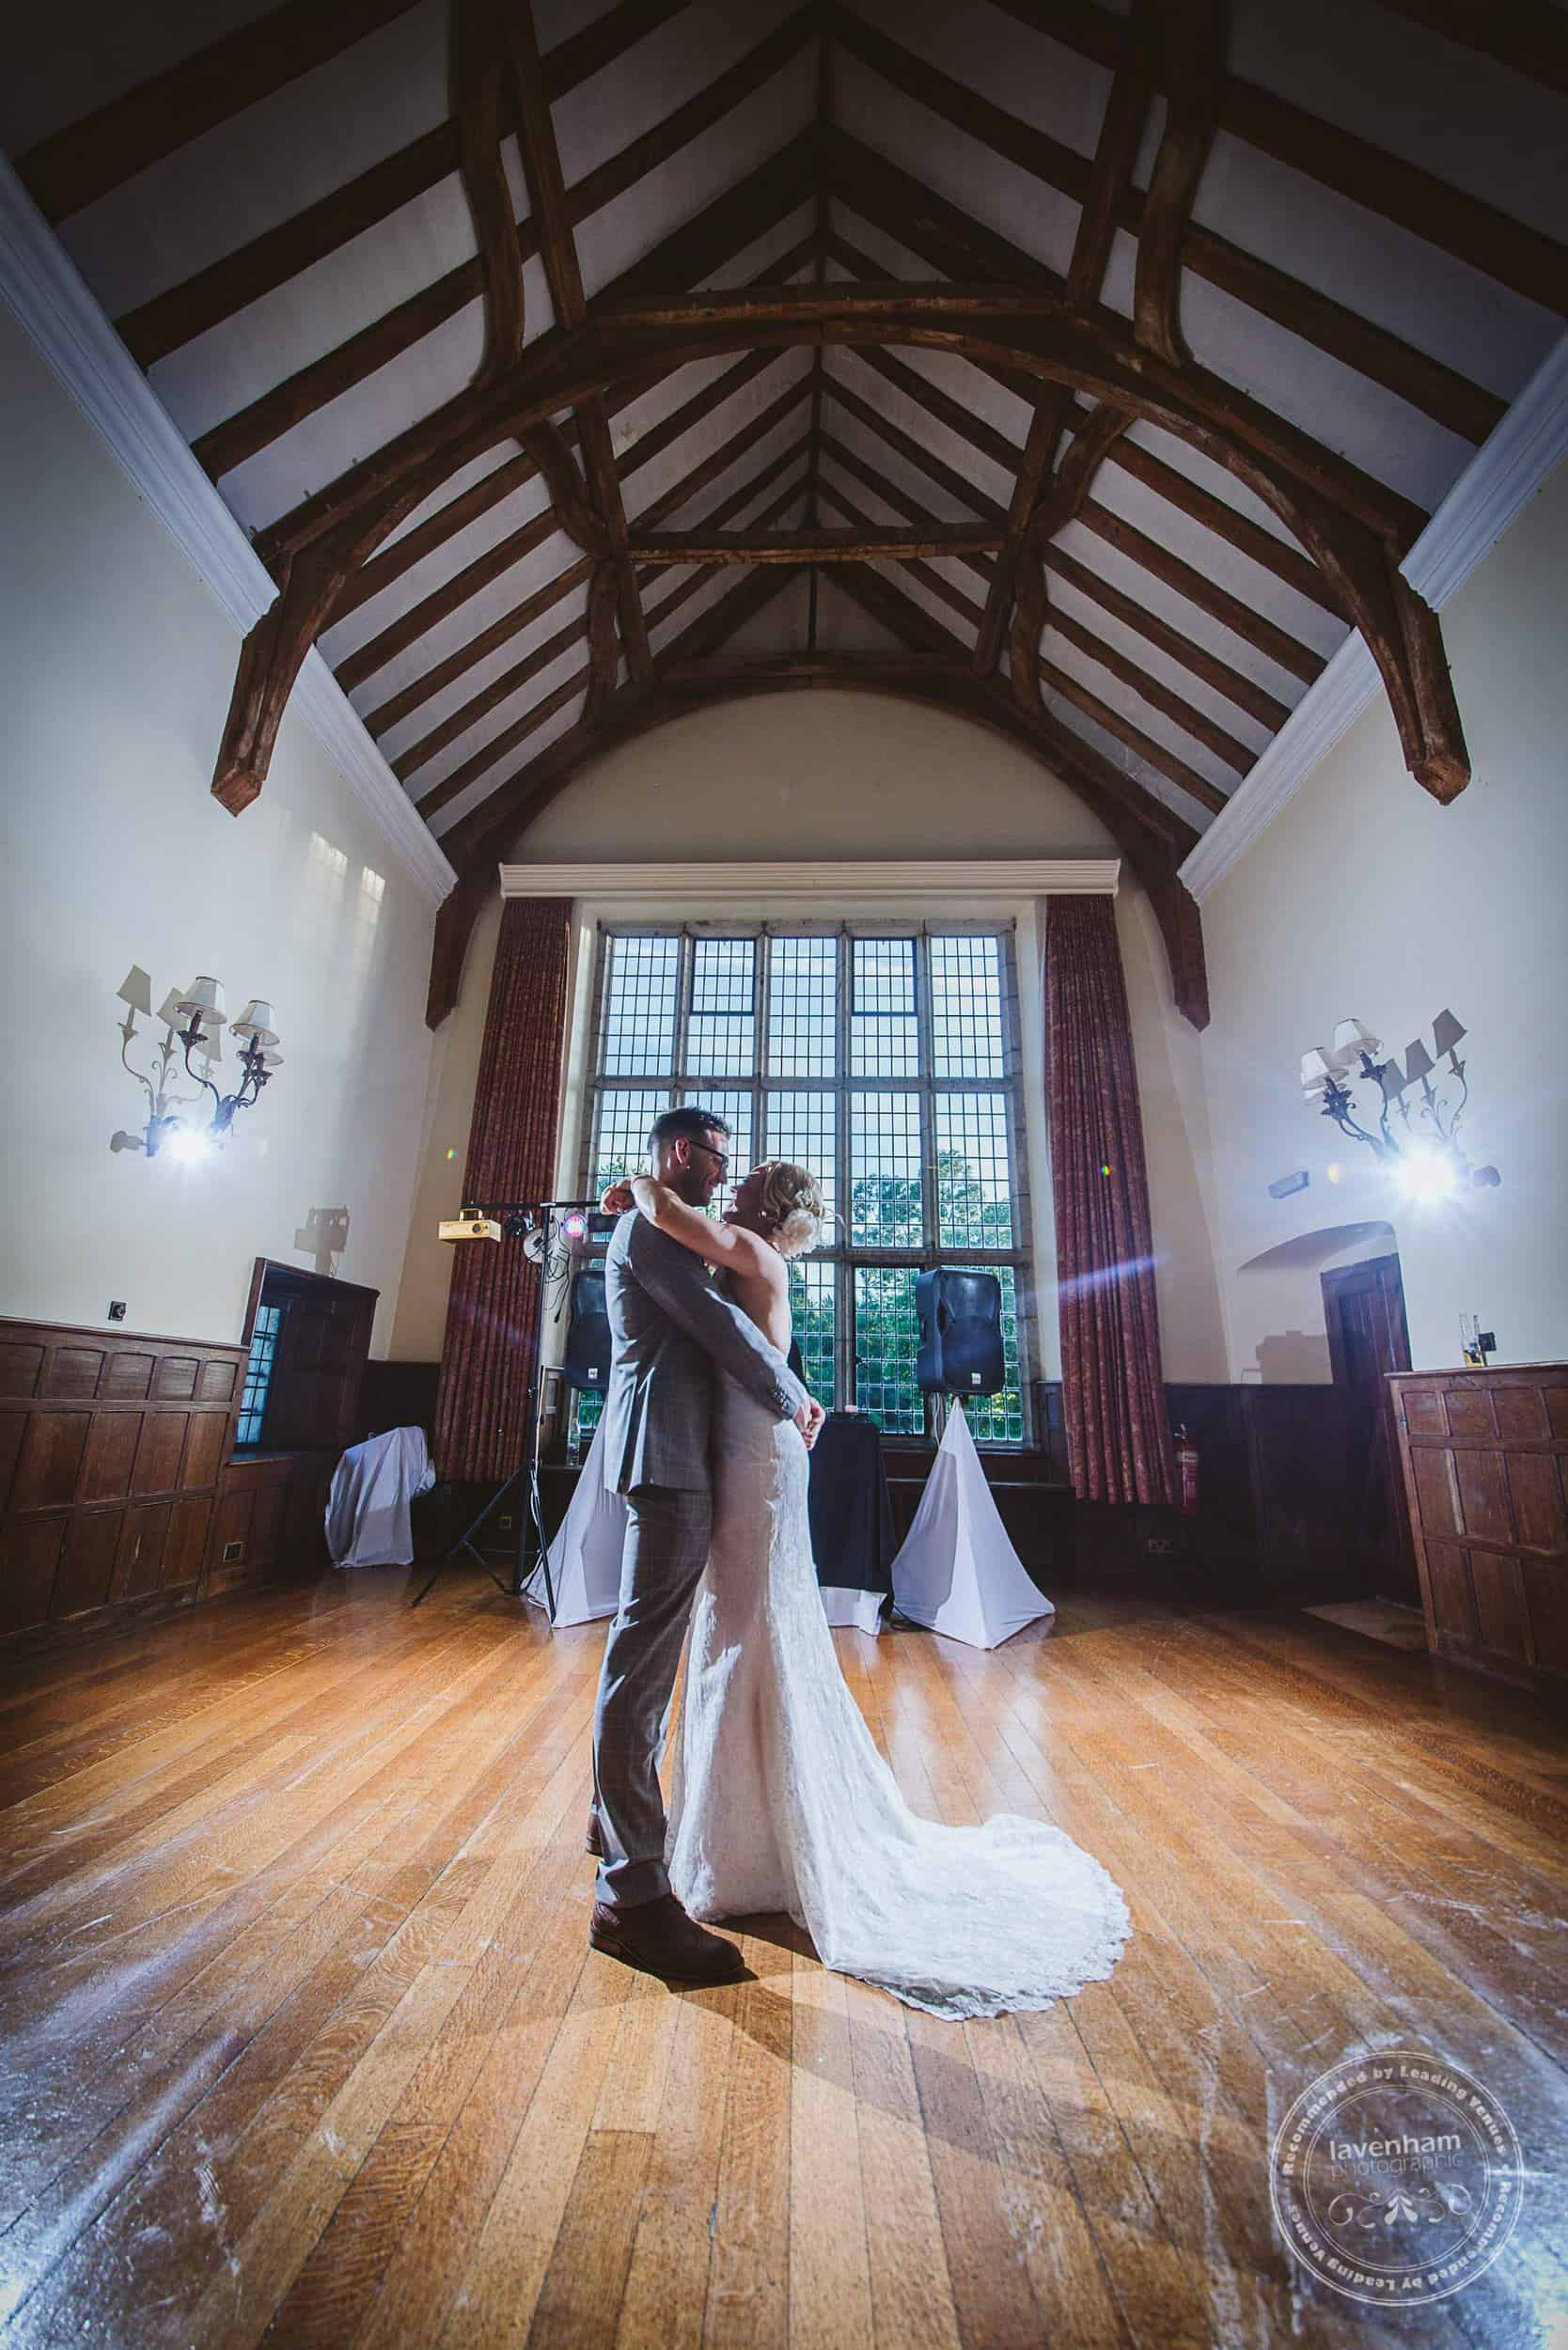 140717 Layer Marney Wedding Photography by Lavenham Photographic 109